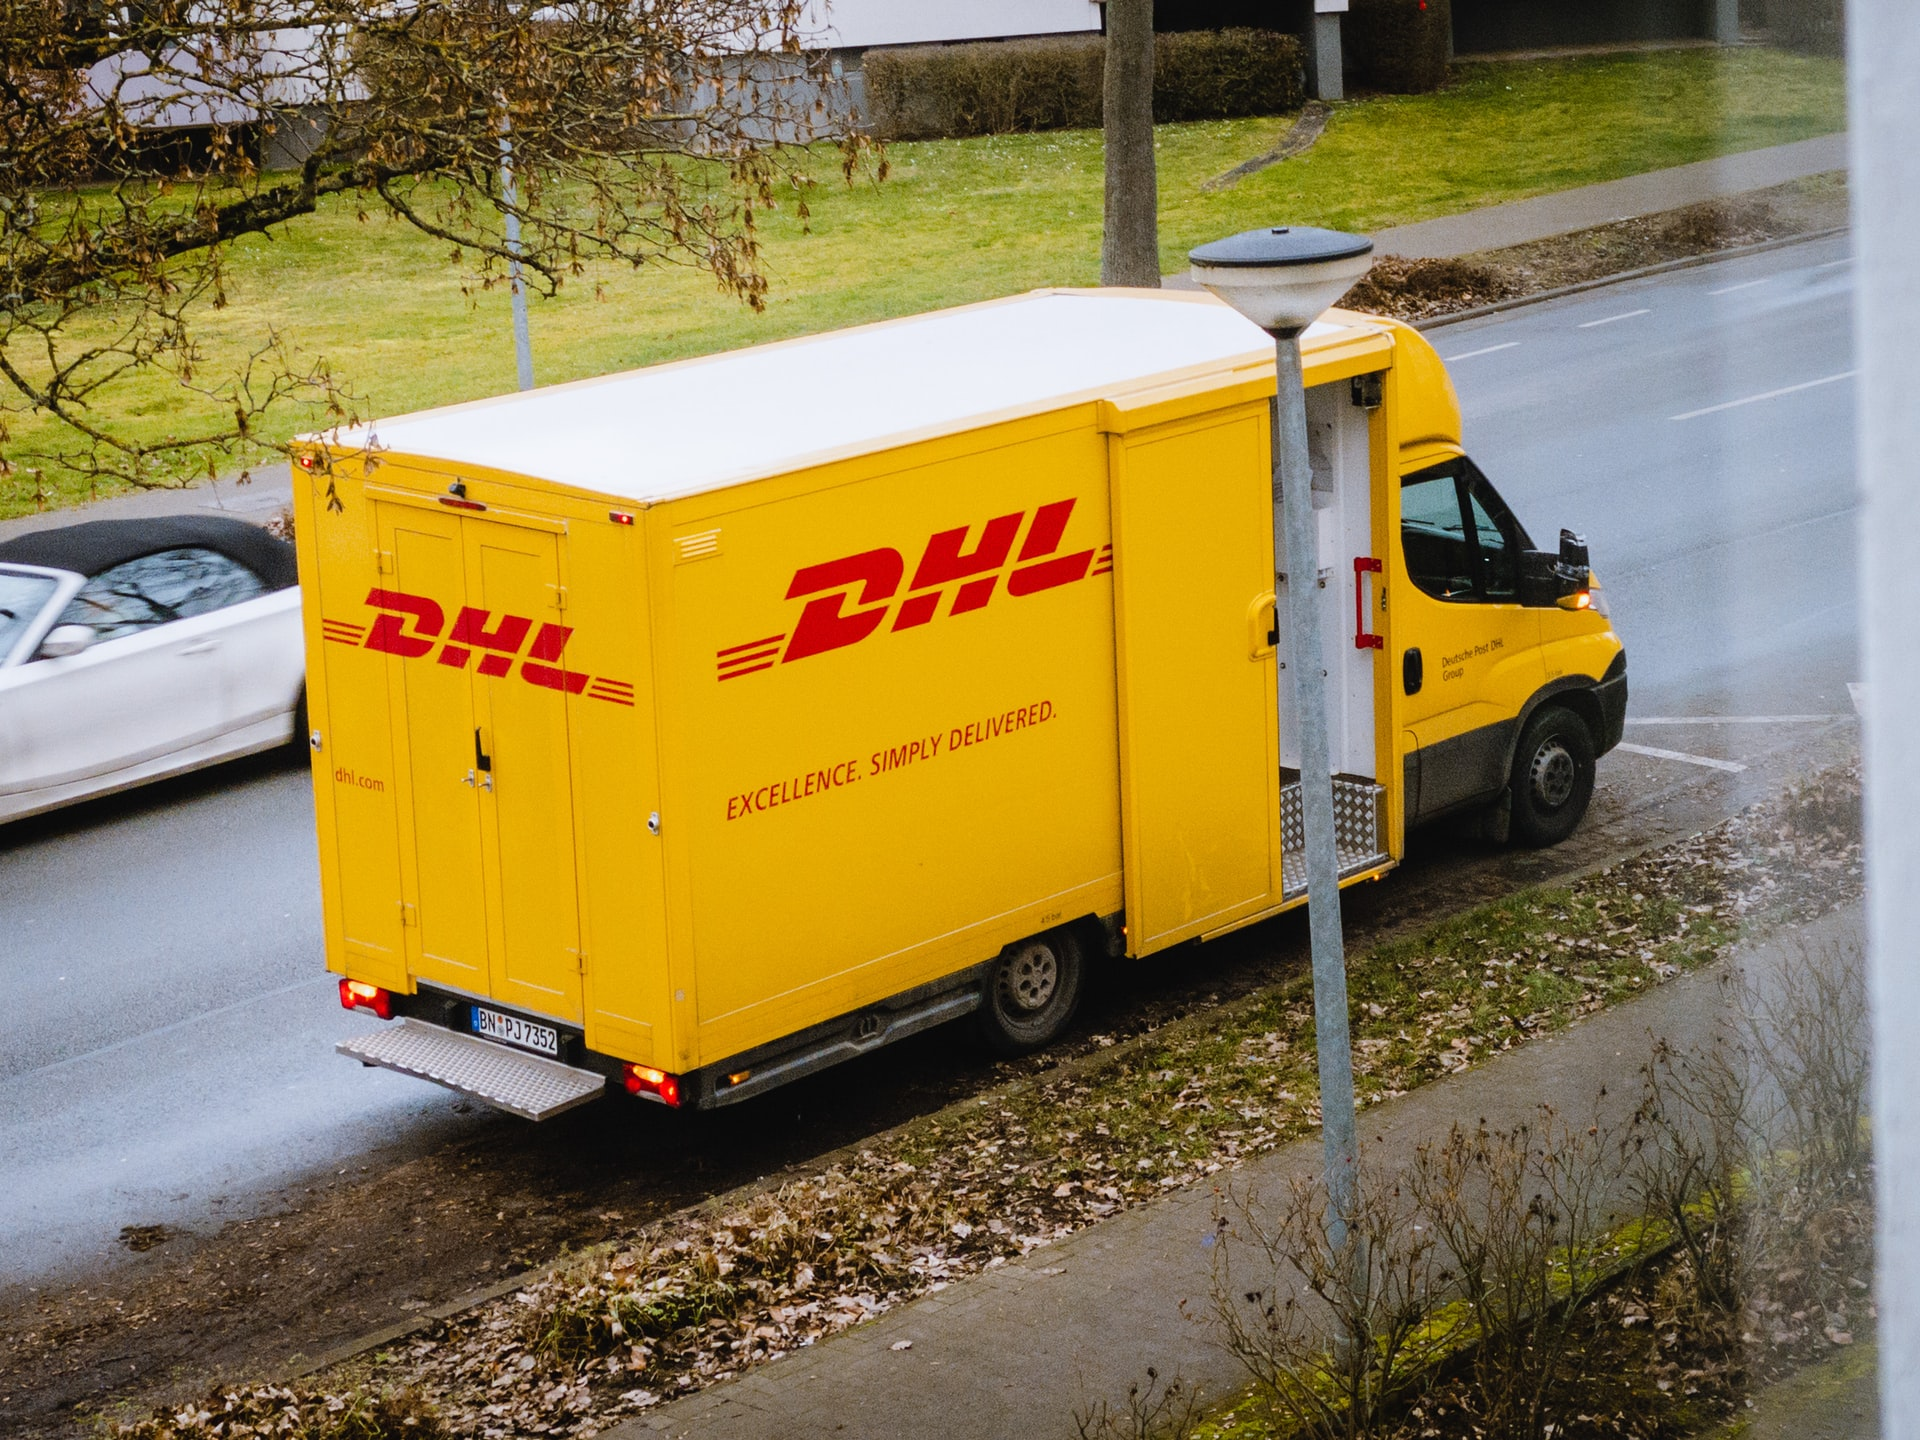 How to make a difference – see how with DHL